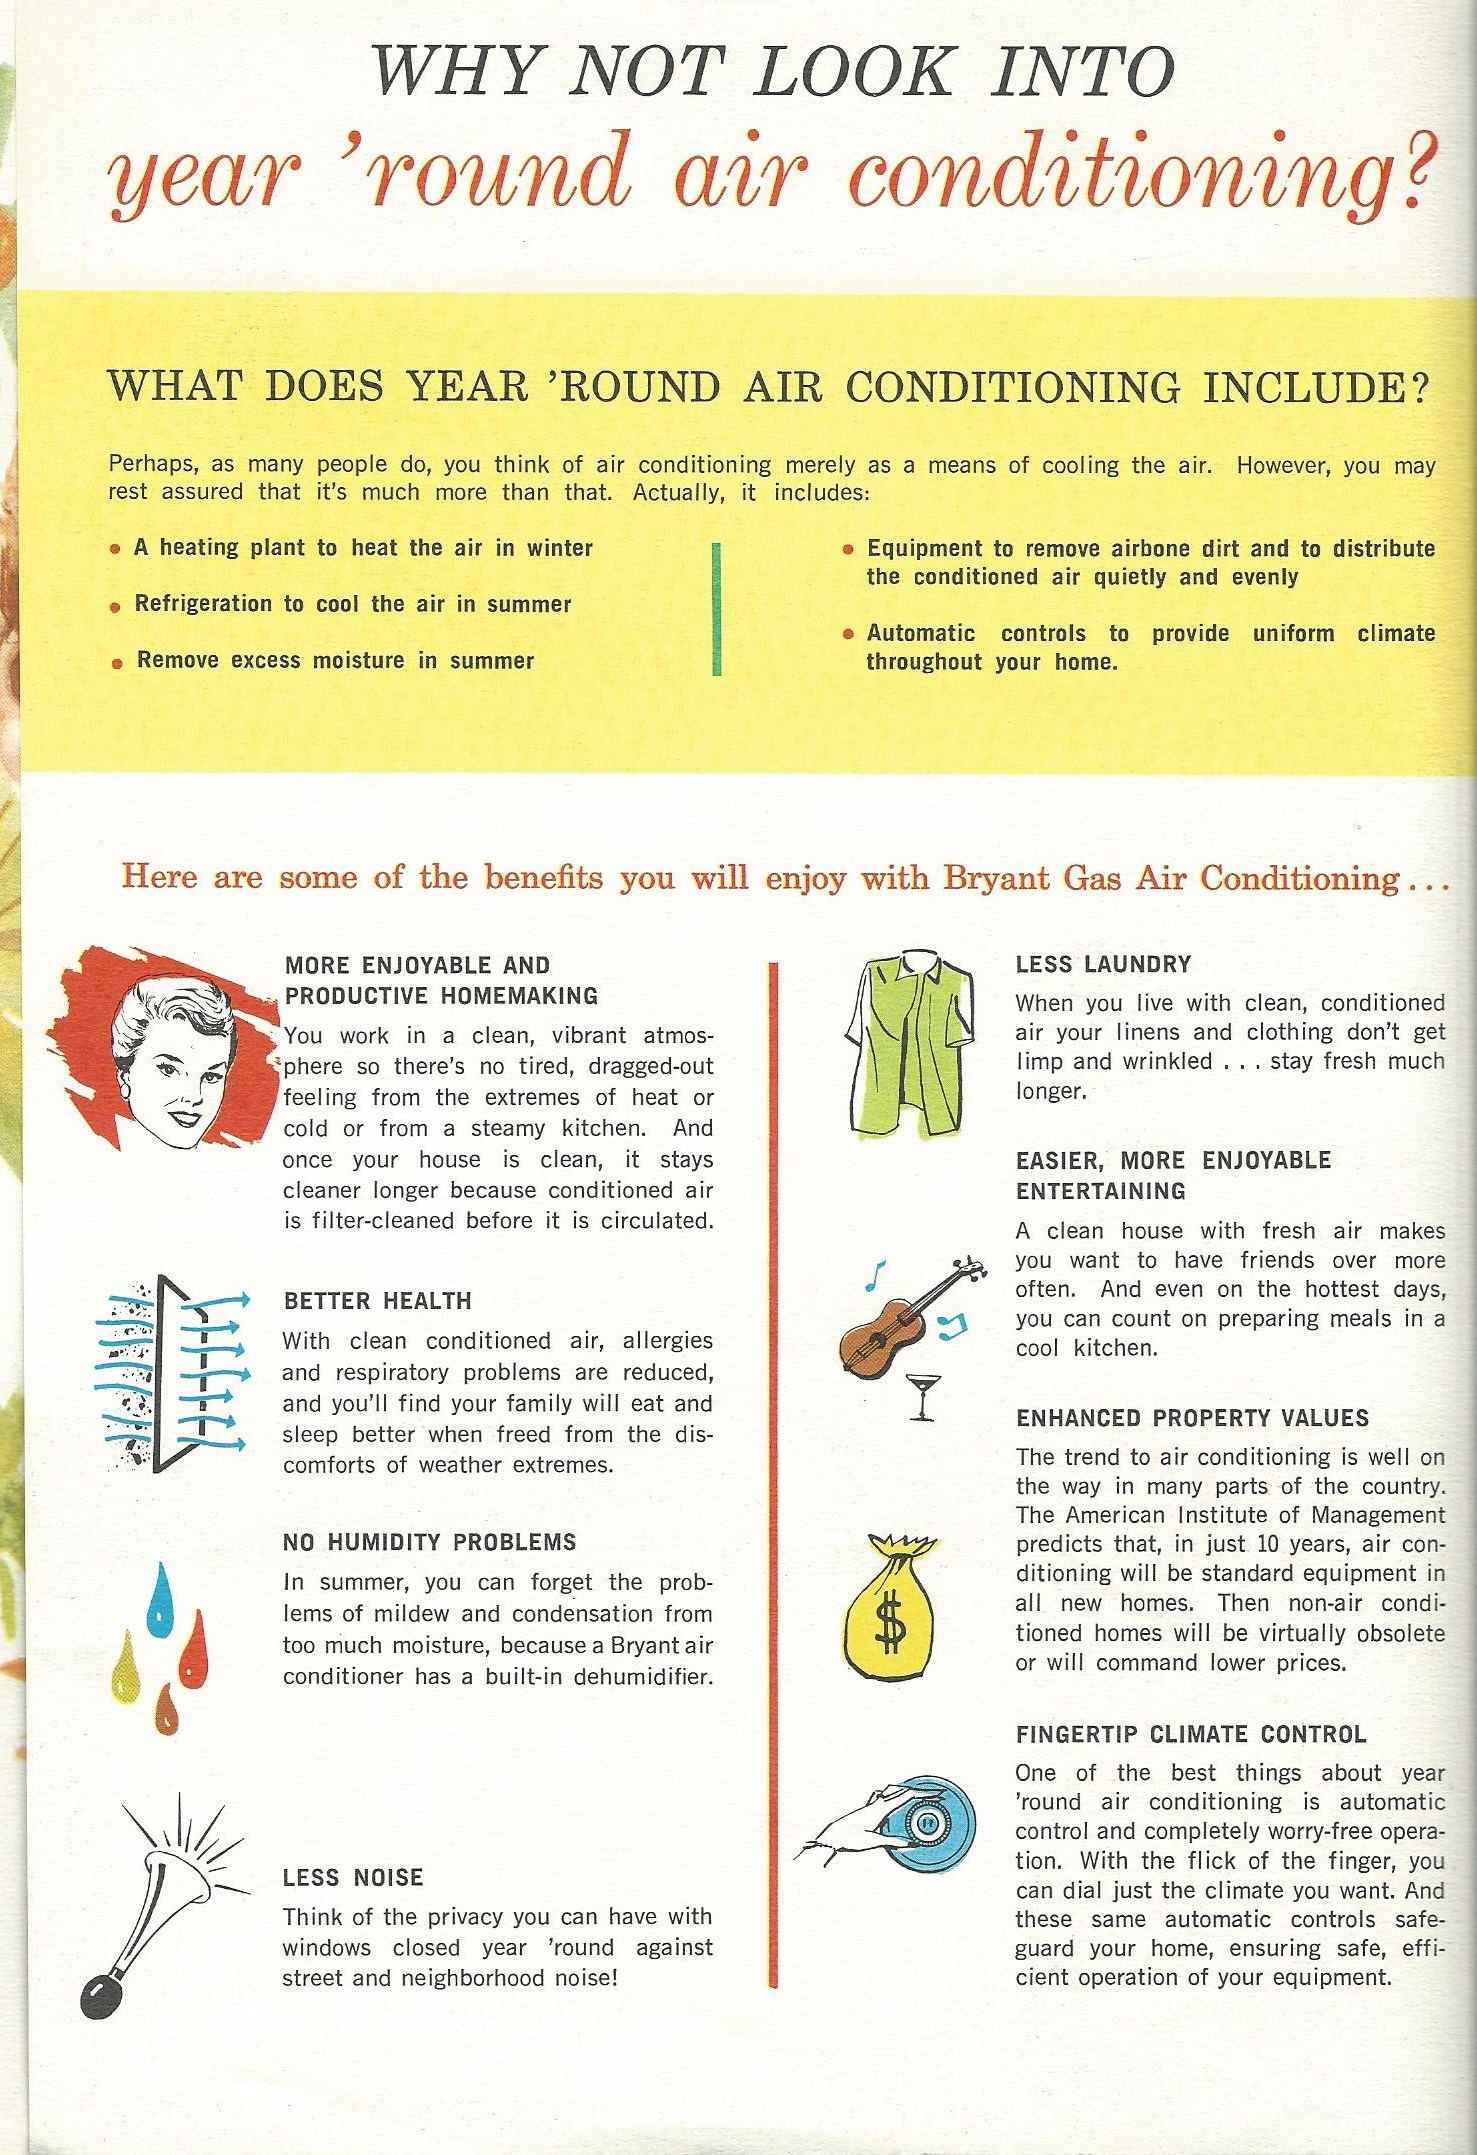 1965 Brochure explaining the benefits of having an air conditioner. #B5A616